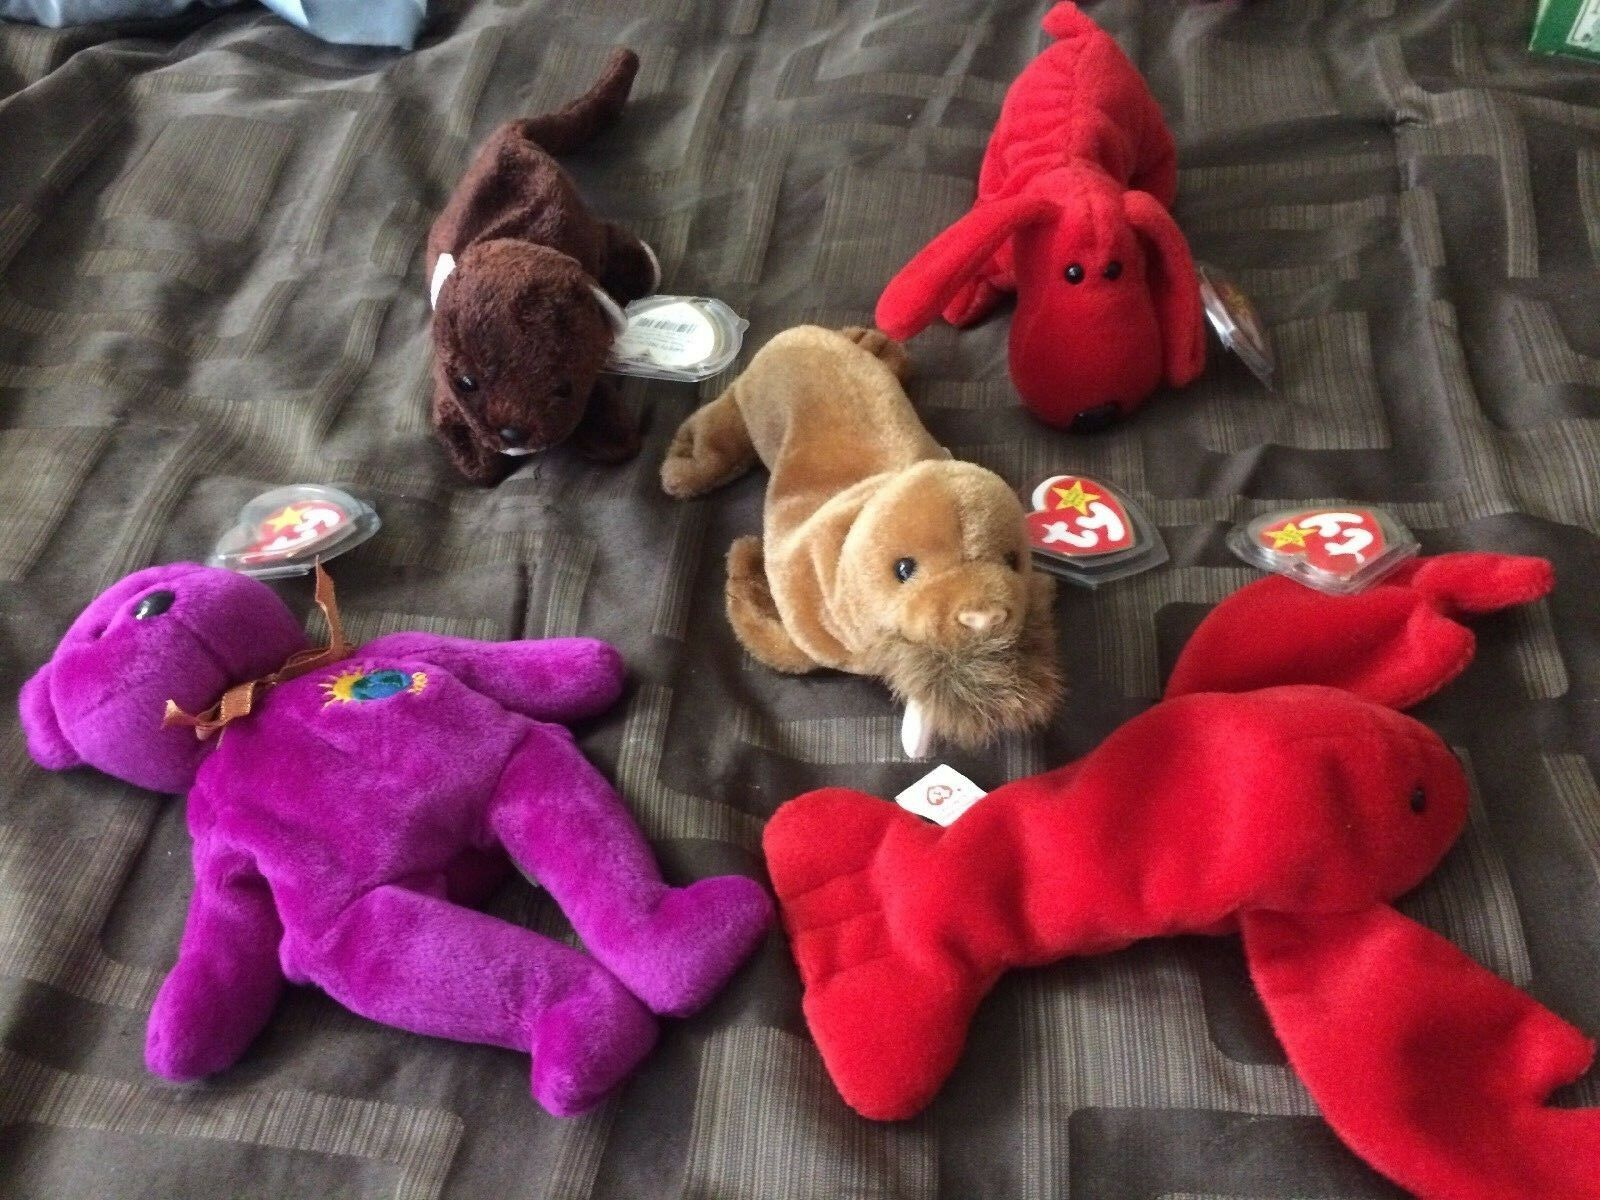 TY Beanie Babies Babies Babies - Mixed Lot of 5 Beanies No Duplicate, All New some rare c38fe4